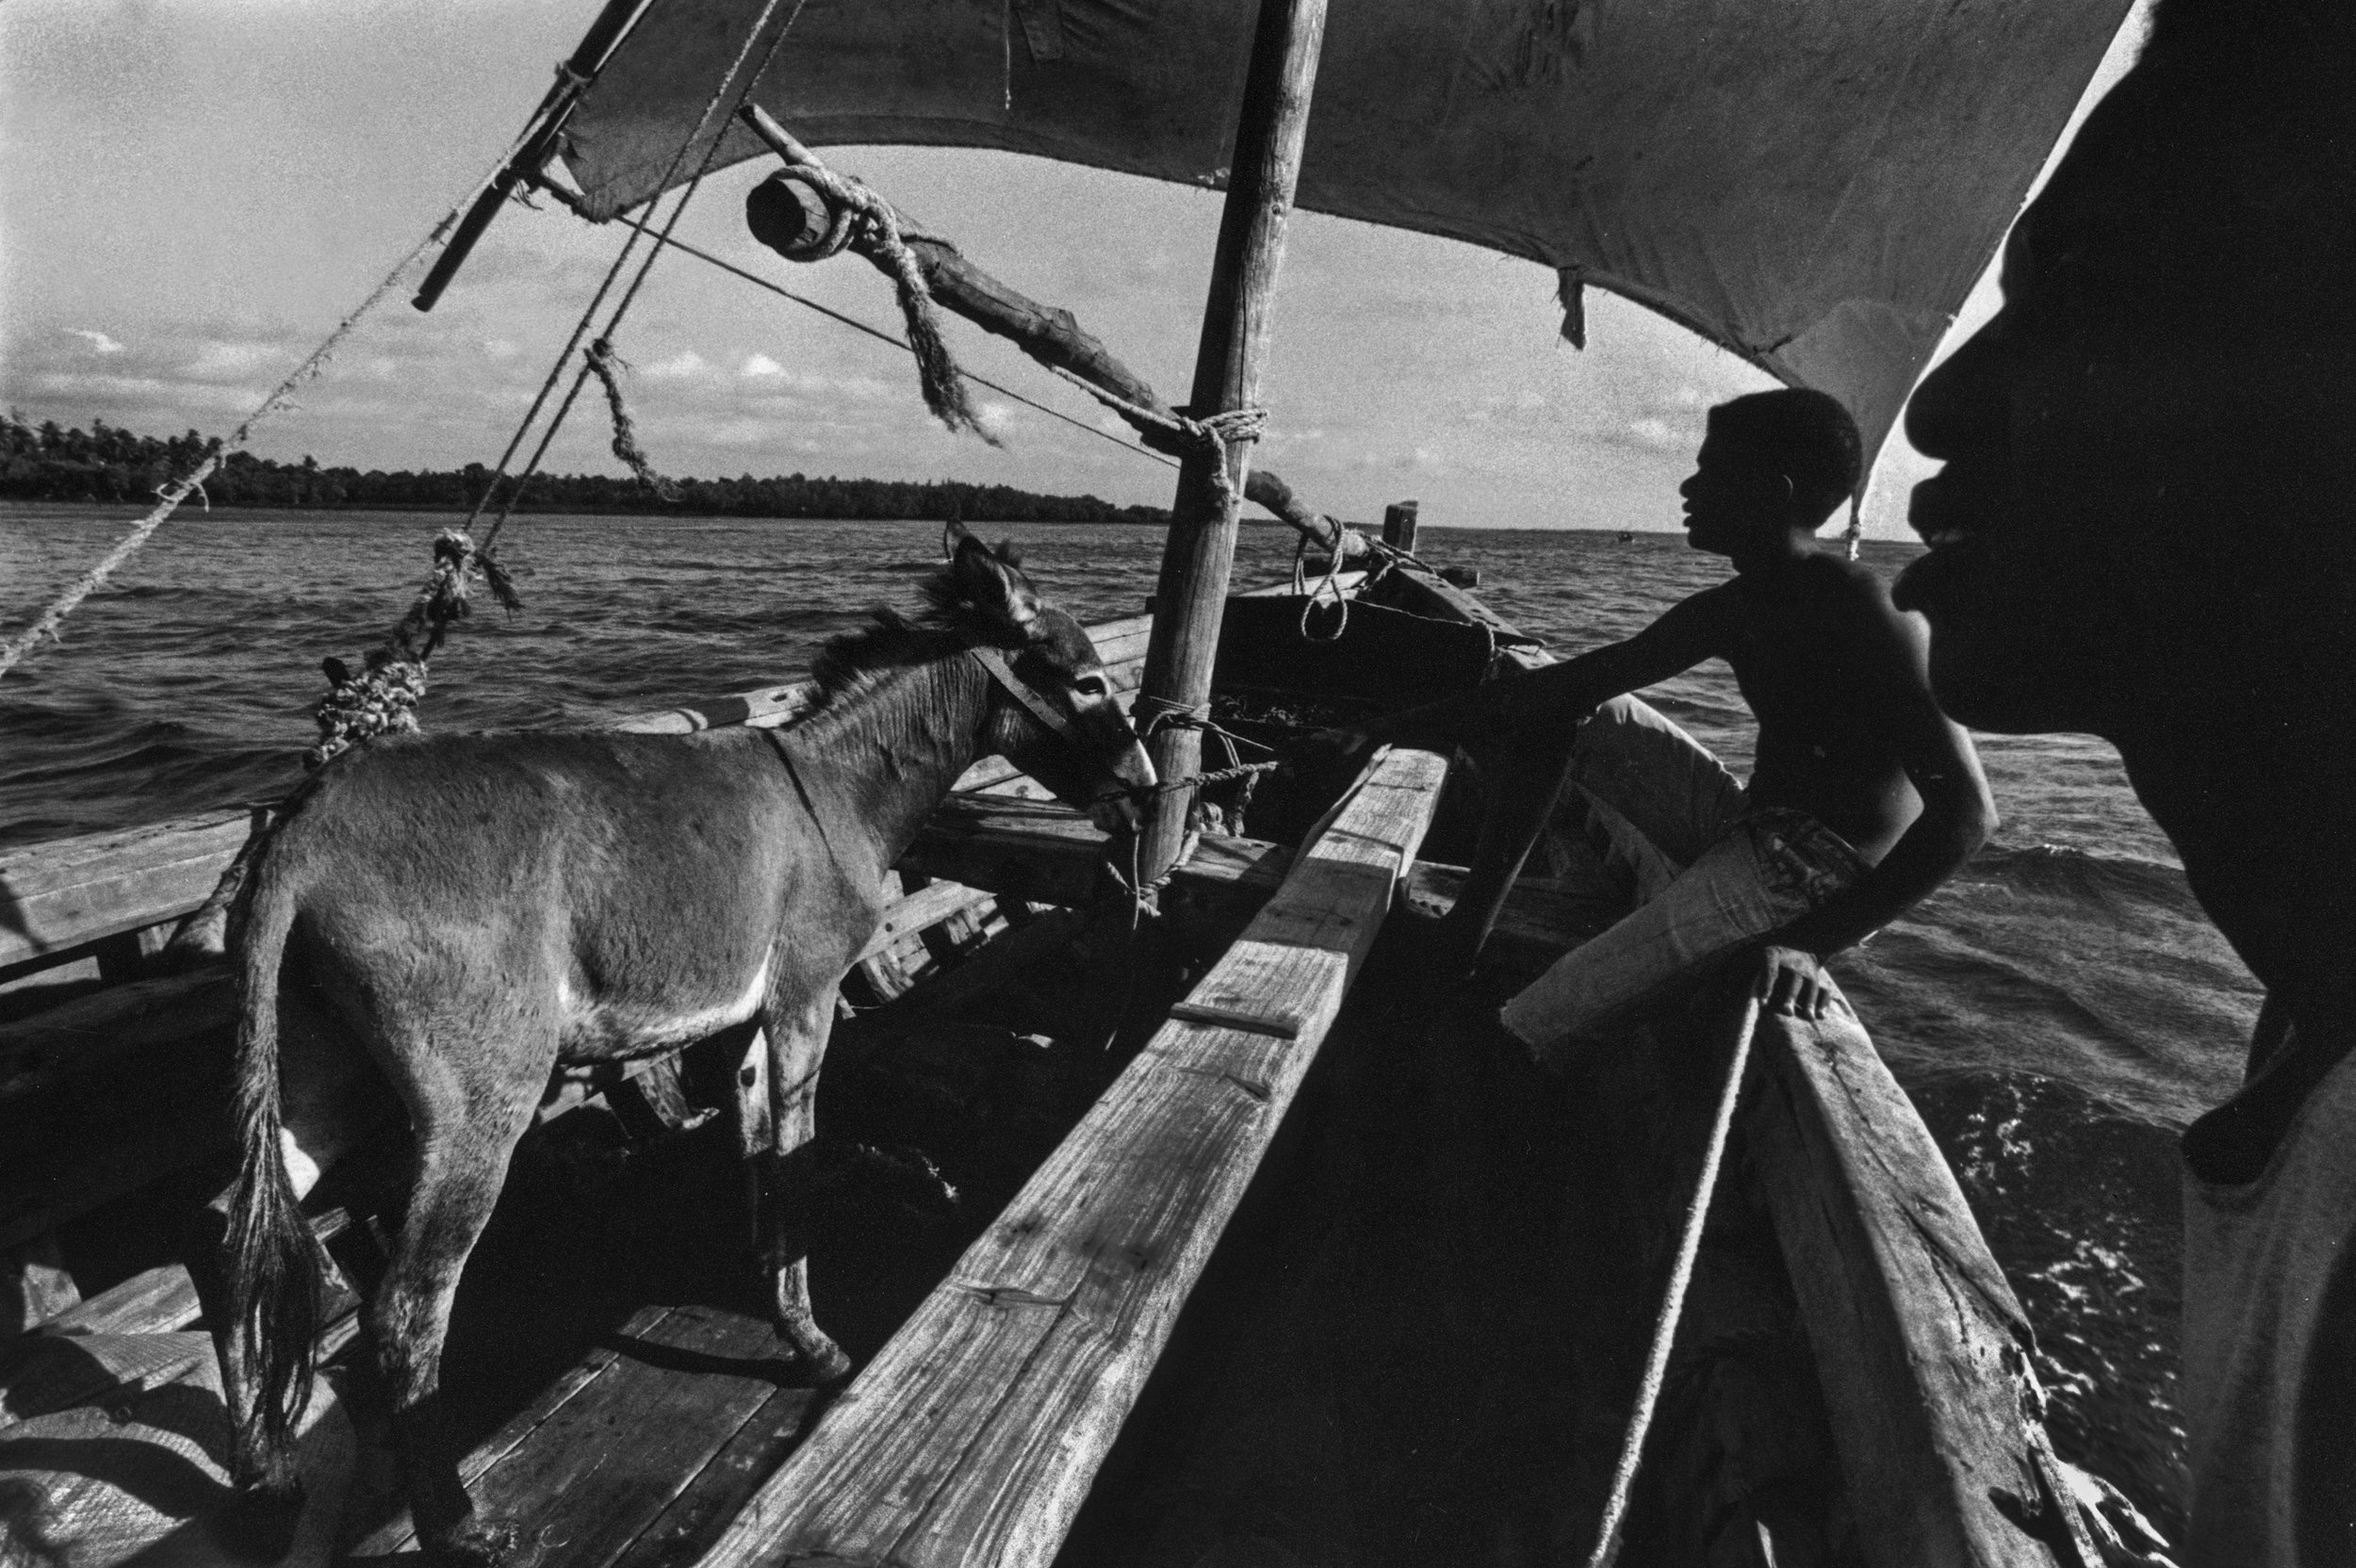 Donkey transported to outer Island. Off the coast of Mombasa, Kenya. 1999